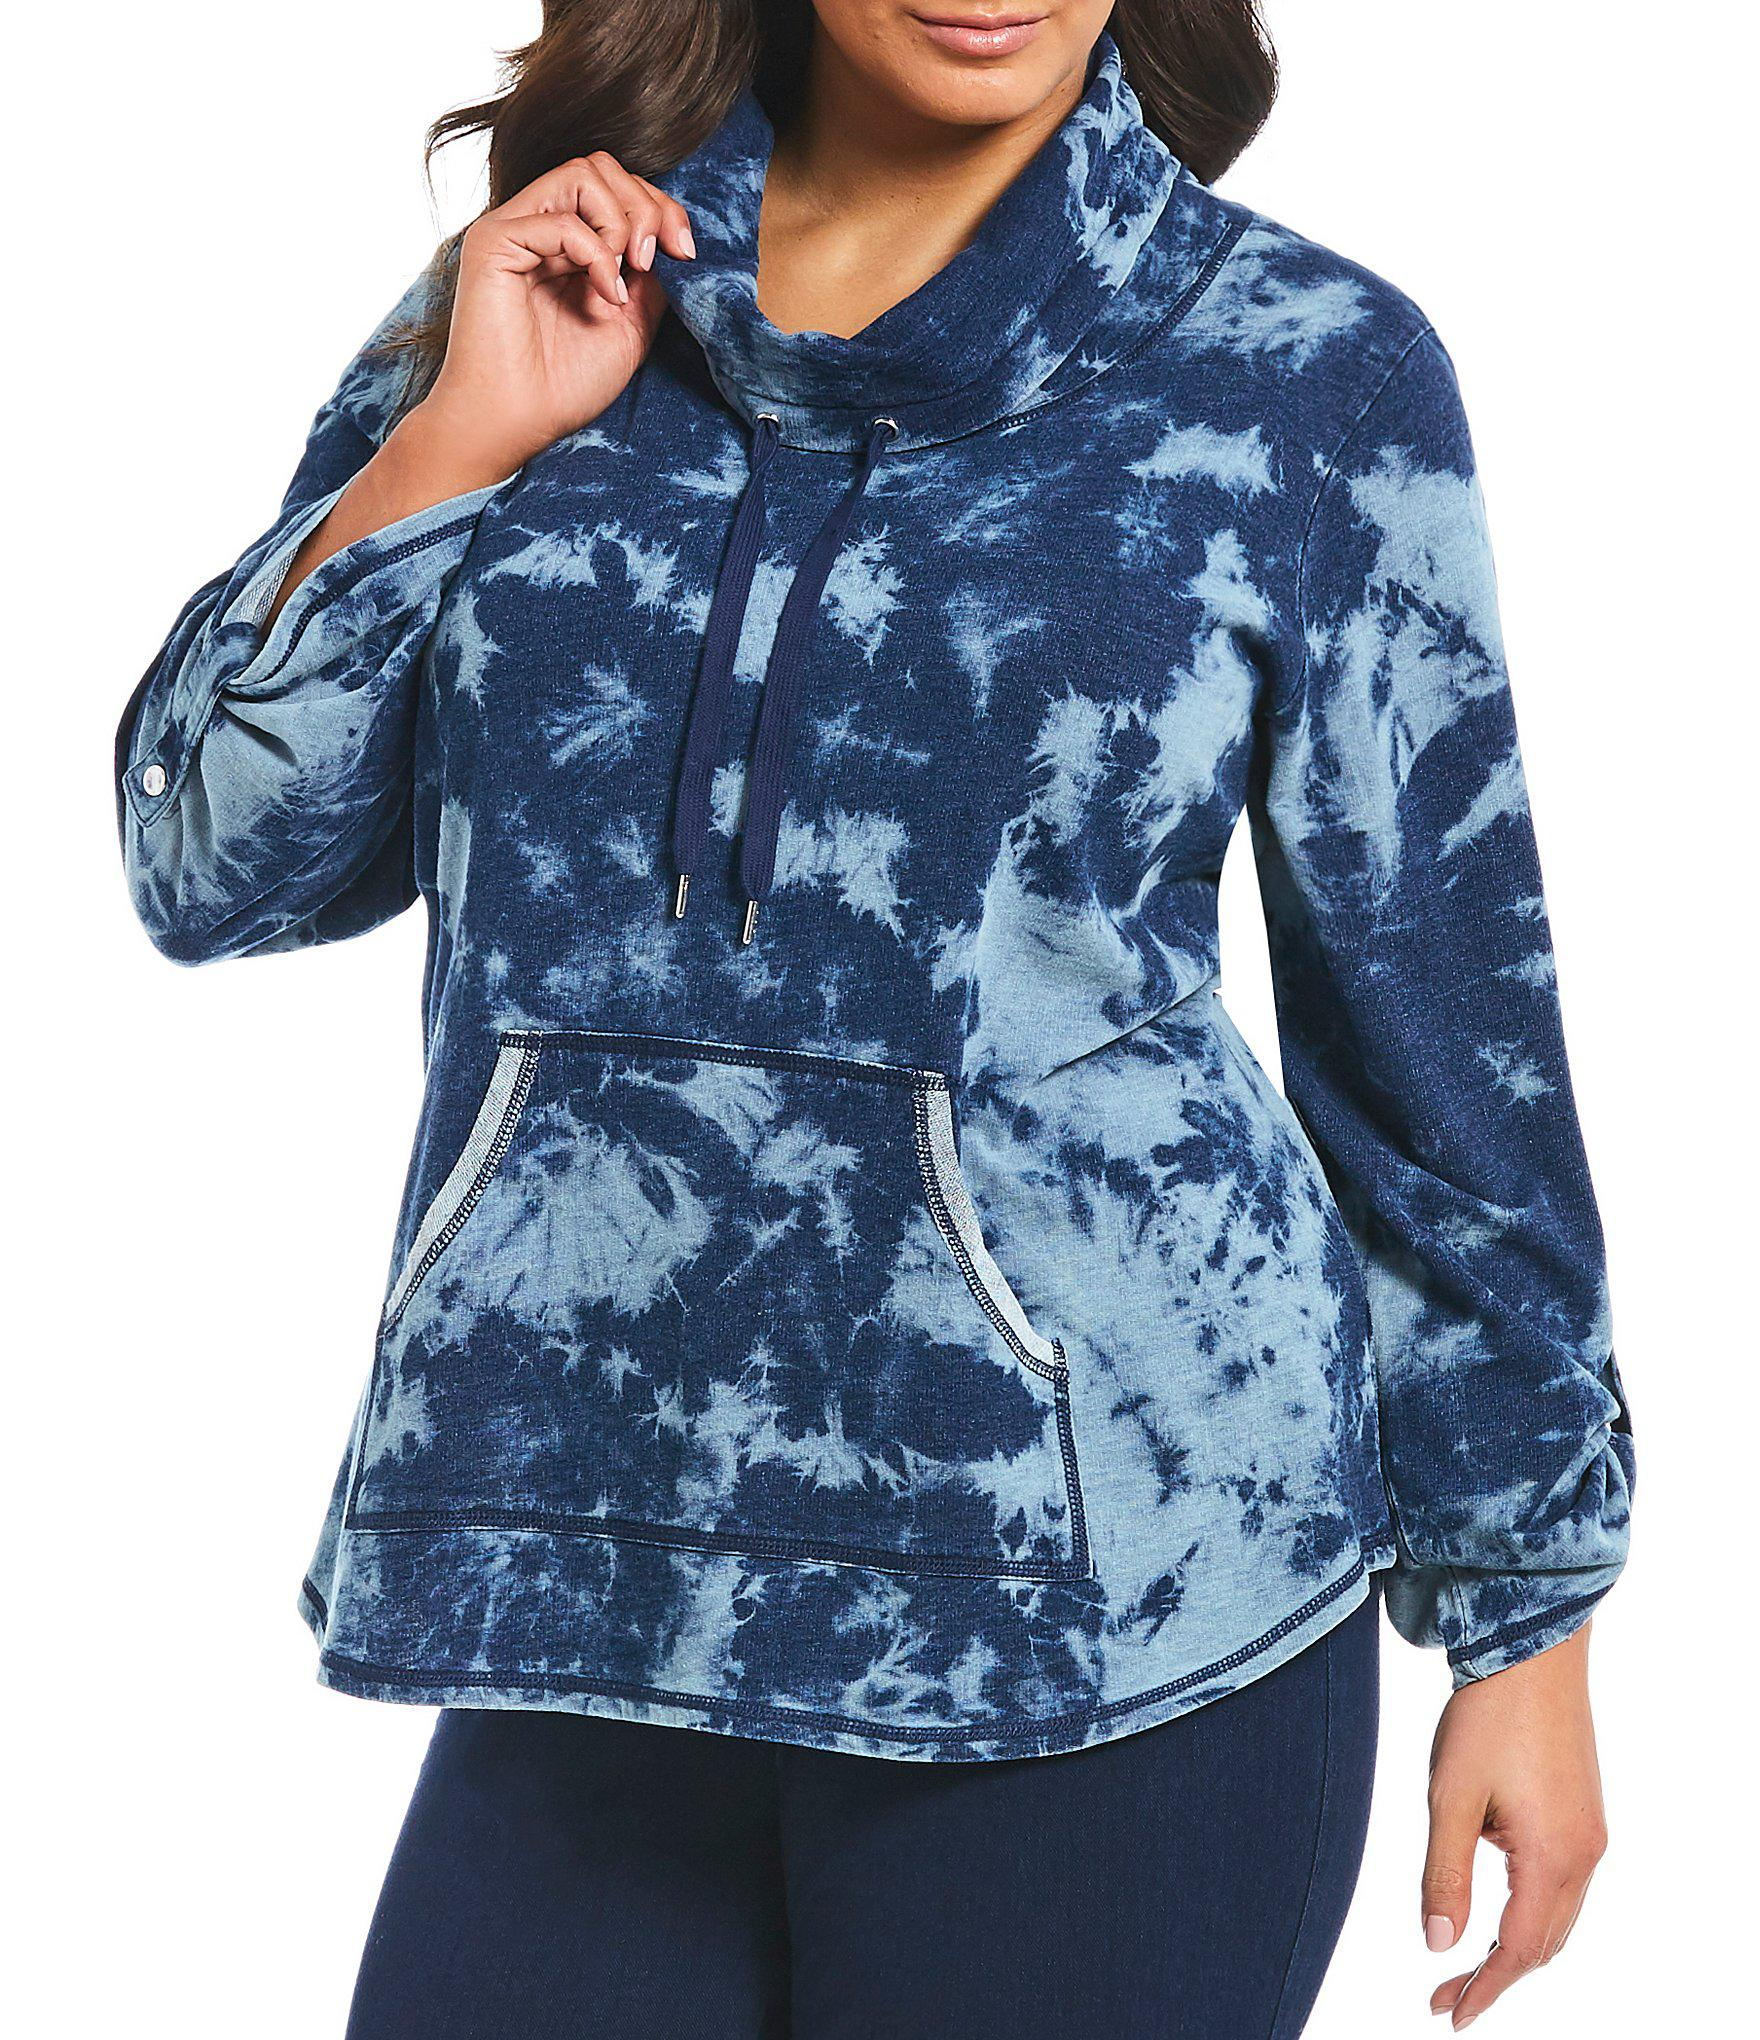 f28a2e2babb5f Ruby Rd. Women s Blue Plus Size Cowl Neck Tie Dye Indigo French Terry  Pullover